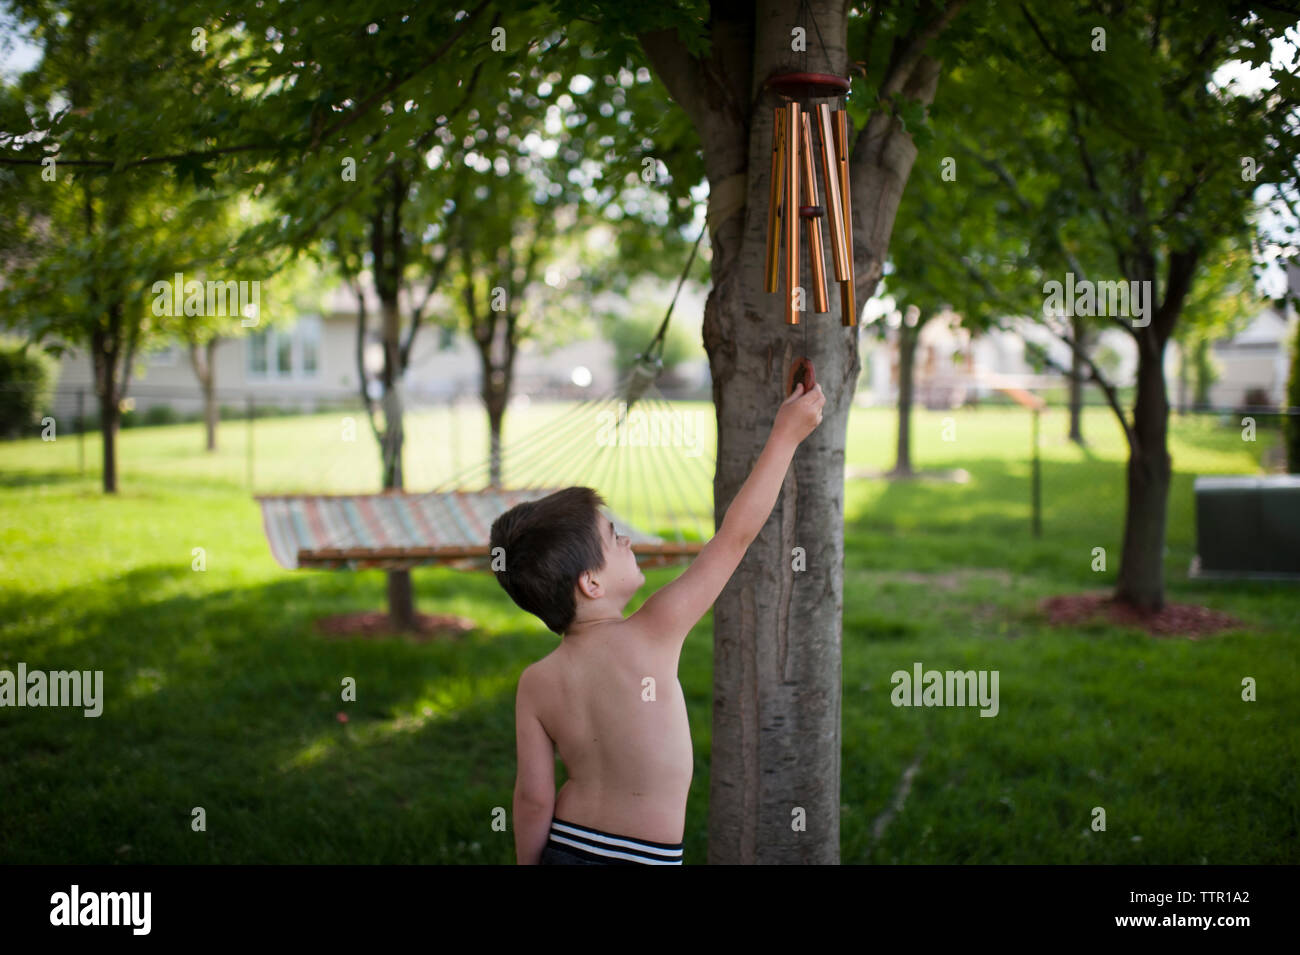 Shirtless boy playing with wind chime while standing at backyard - Stock Image